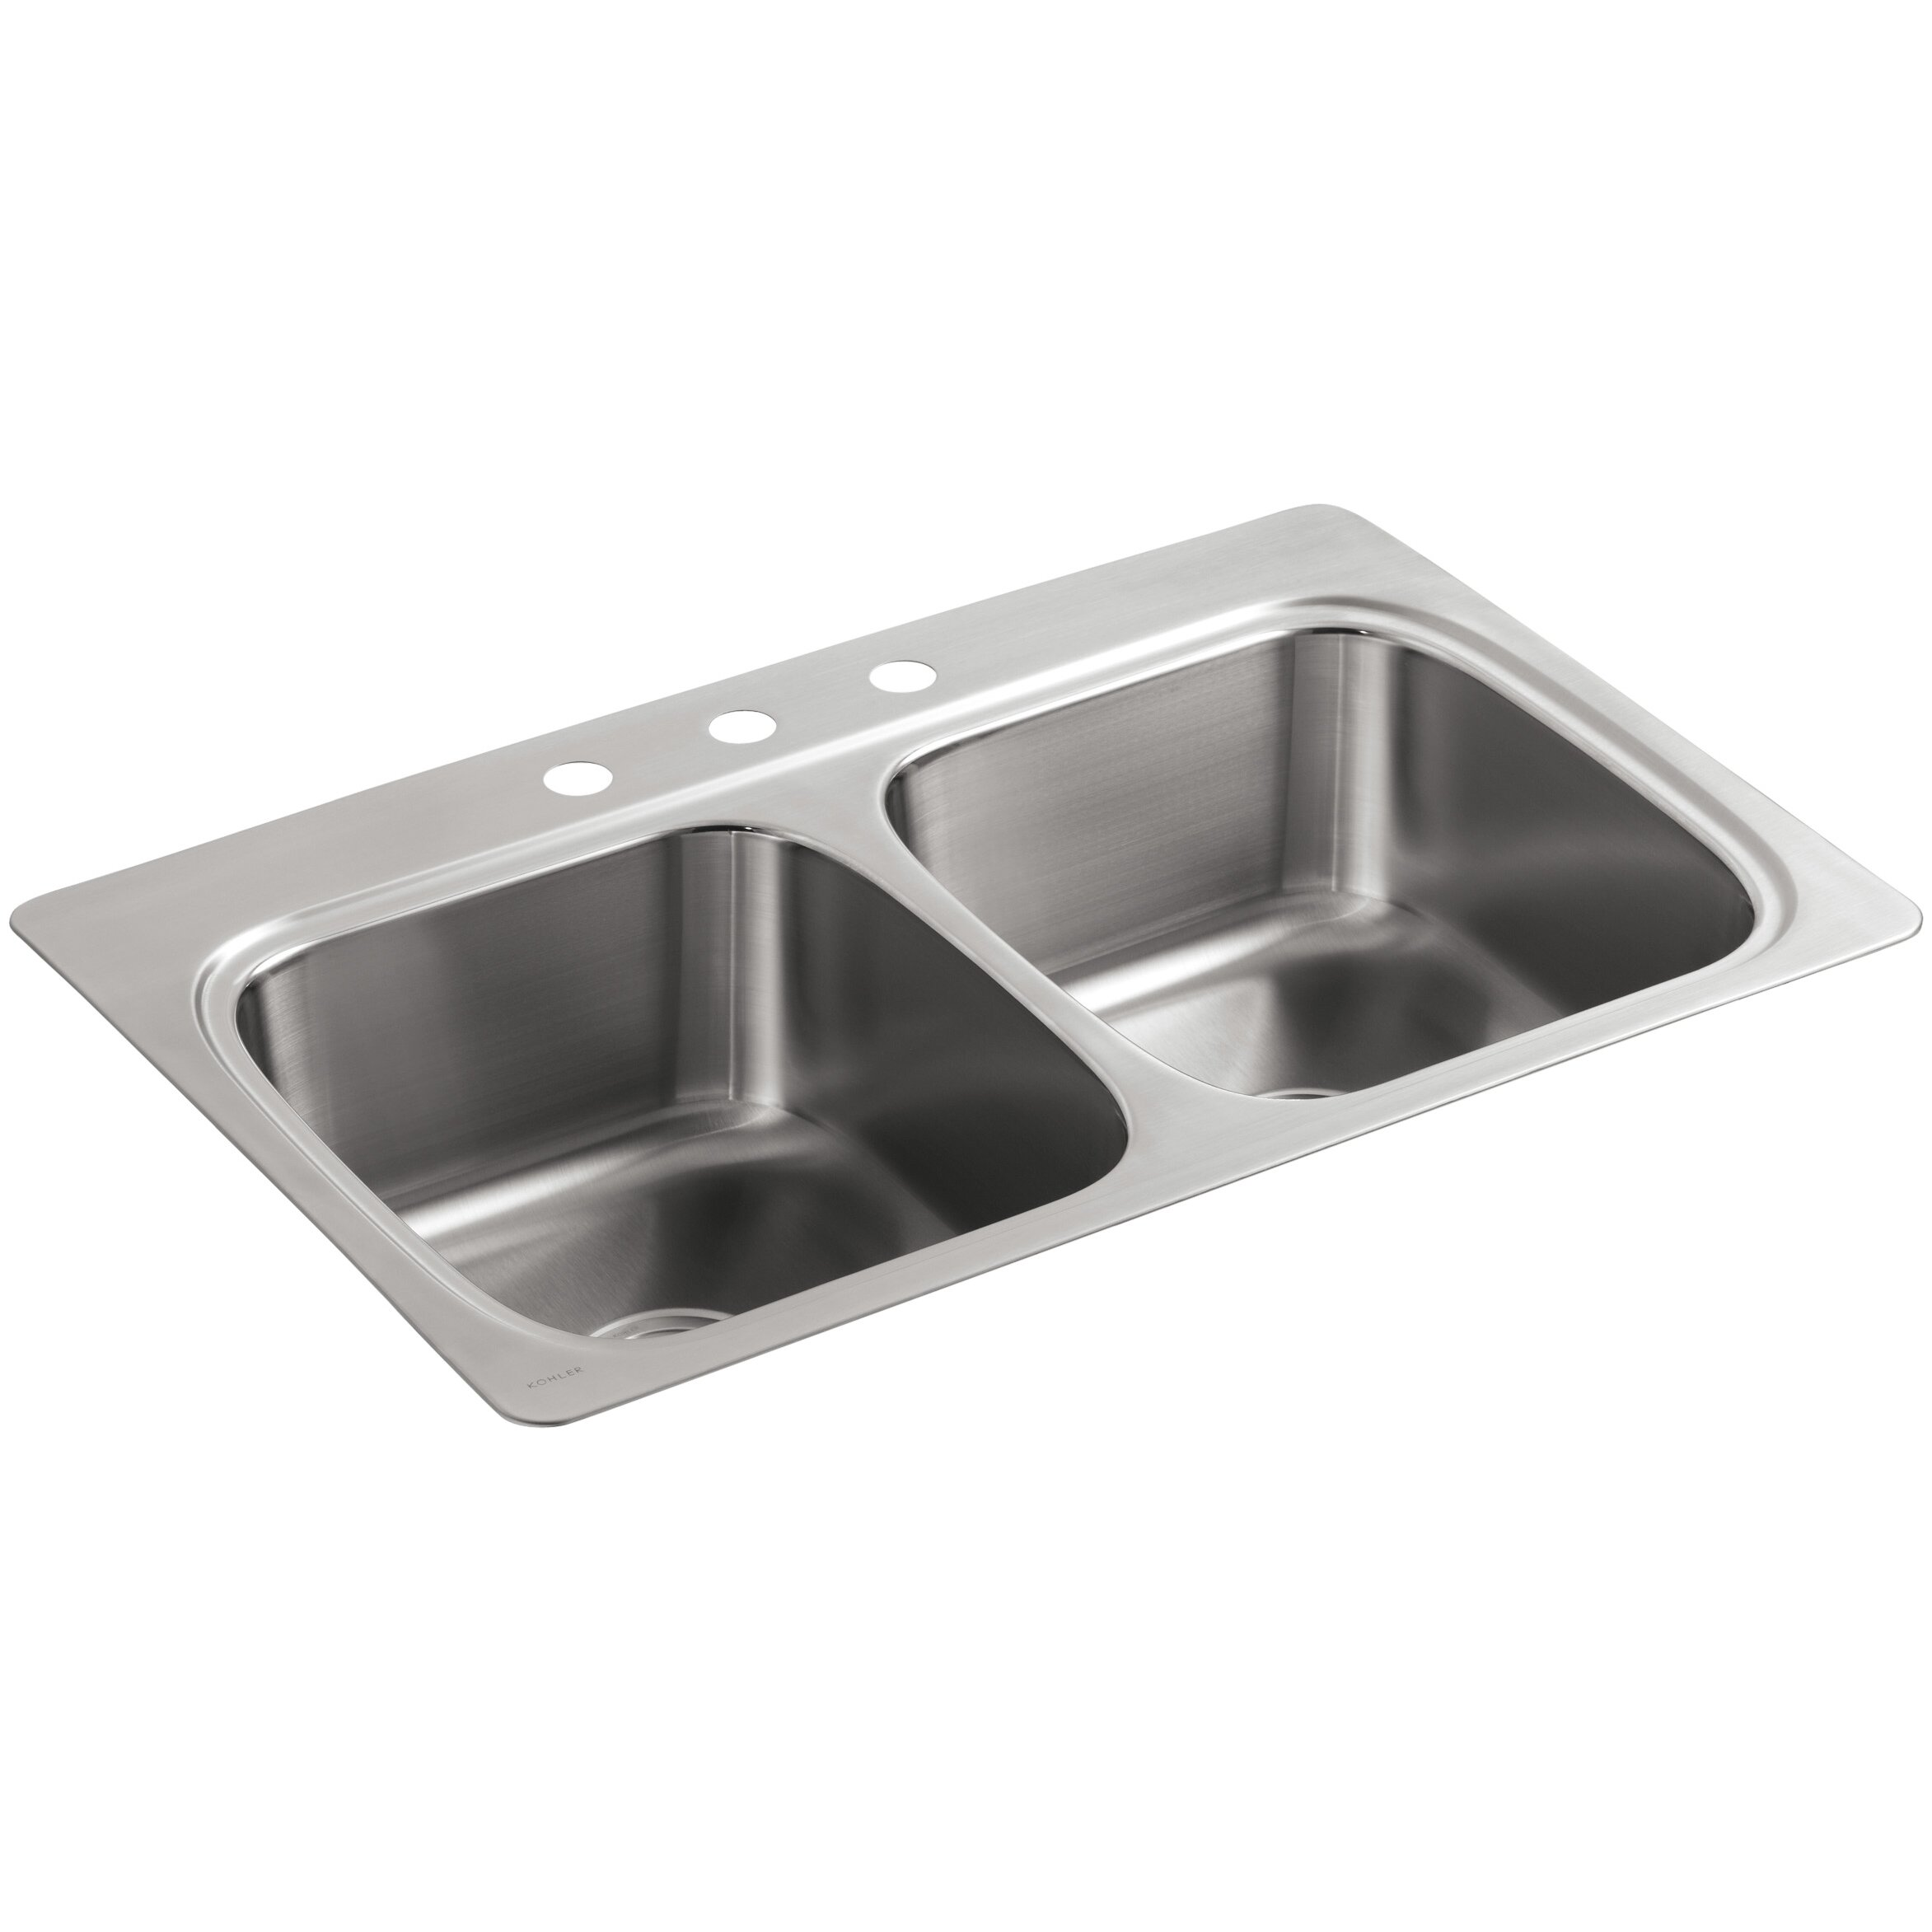 kitchen sinks top mount kohler verse top mount equal bowl kitchen sink with 6094